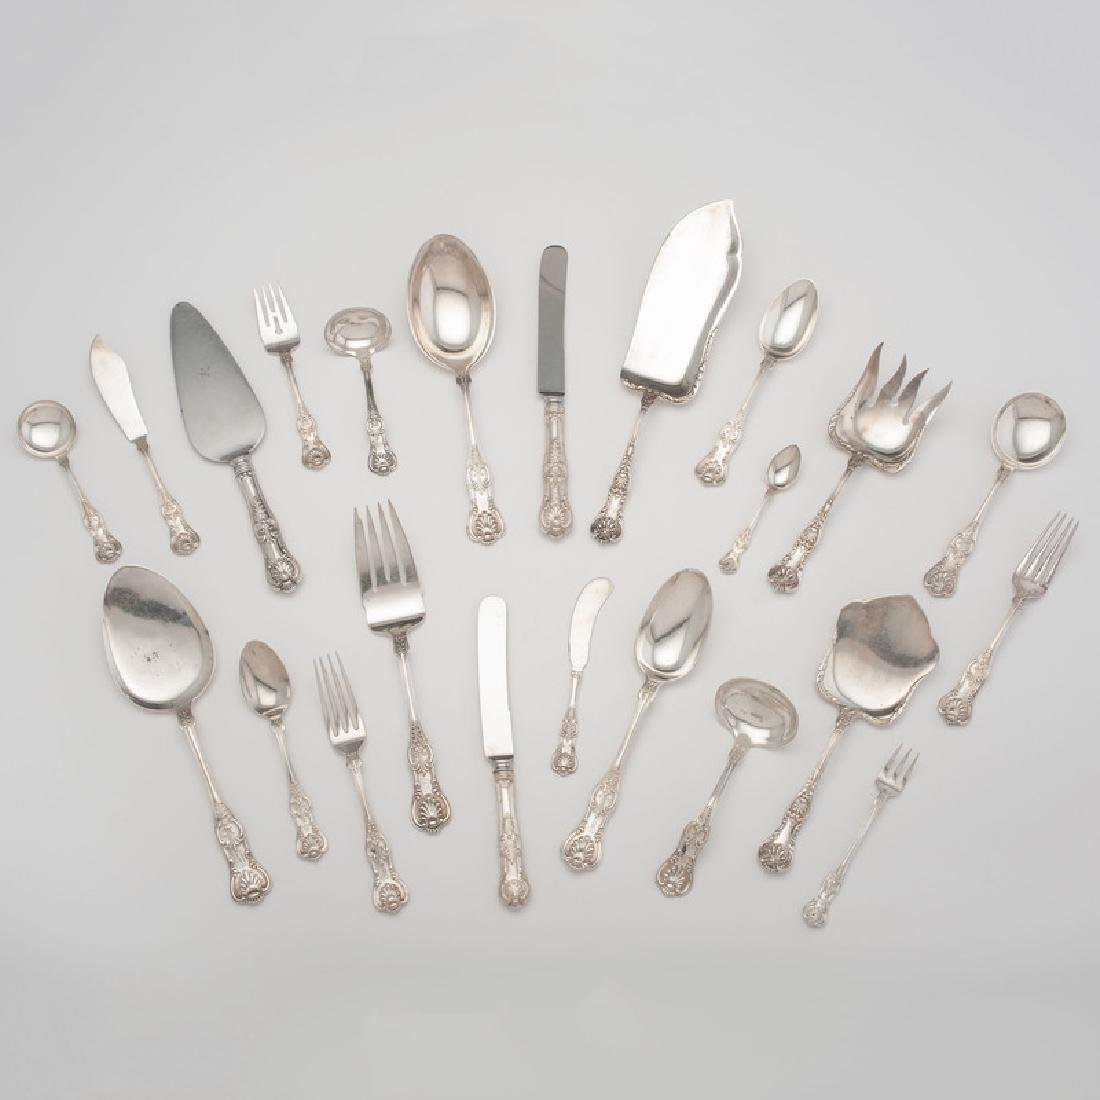 Dominick & Haff & Gorham Sterling Flatware, Retailed by